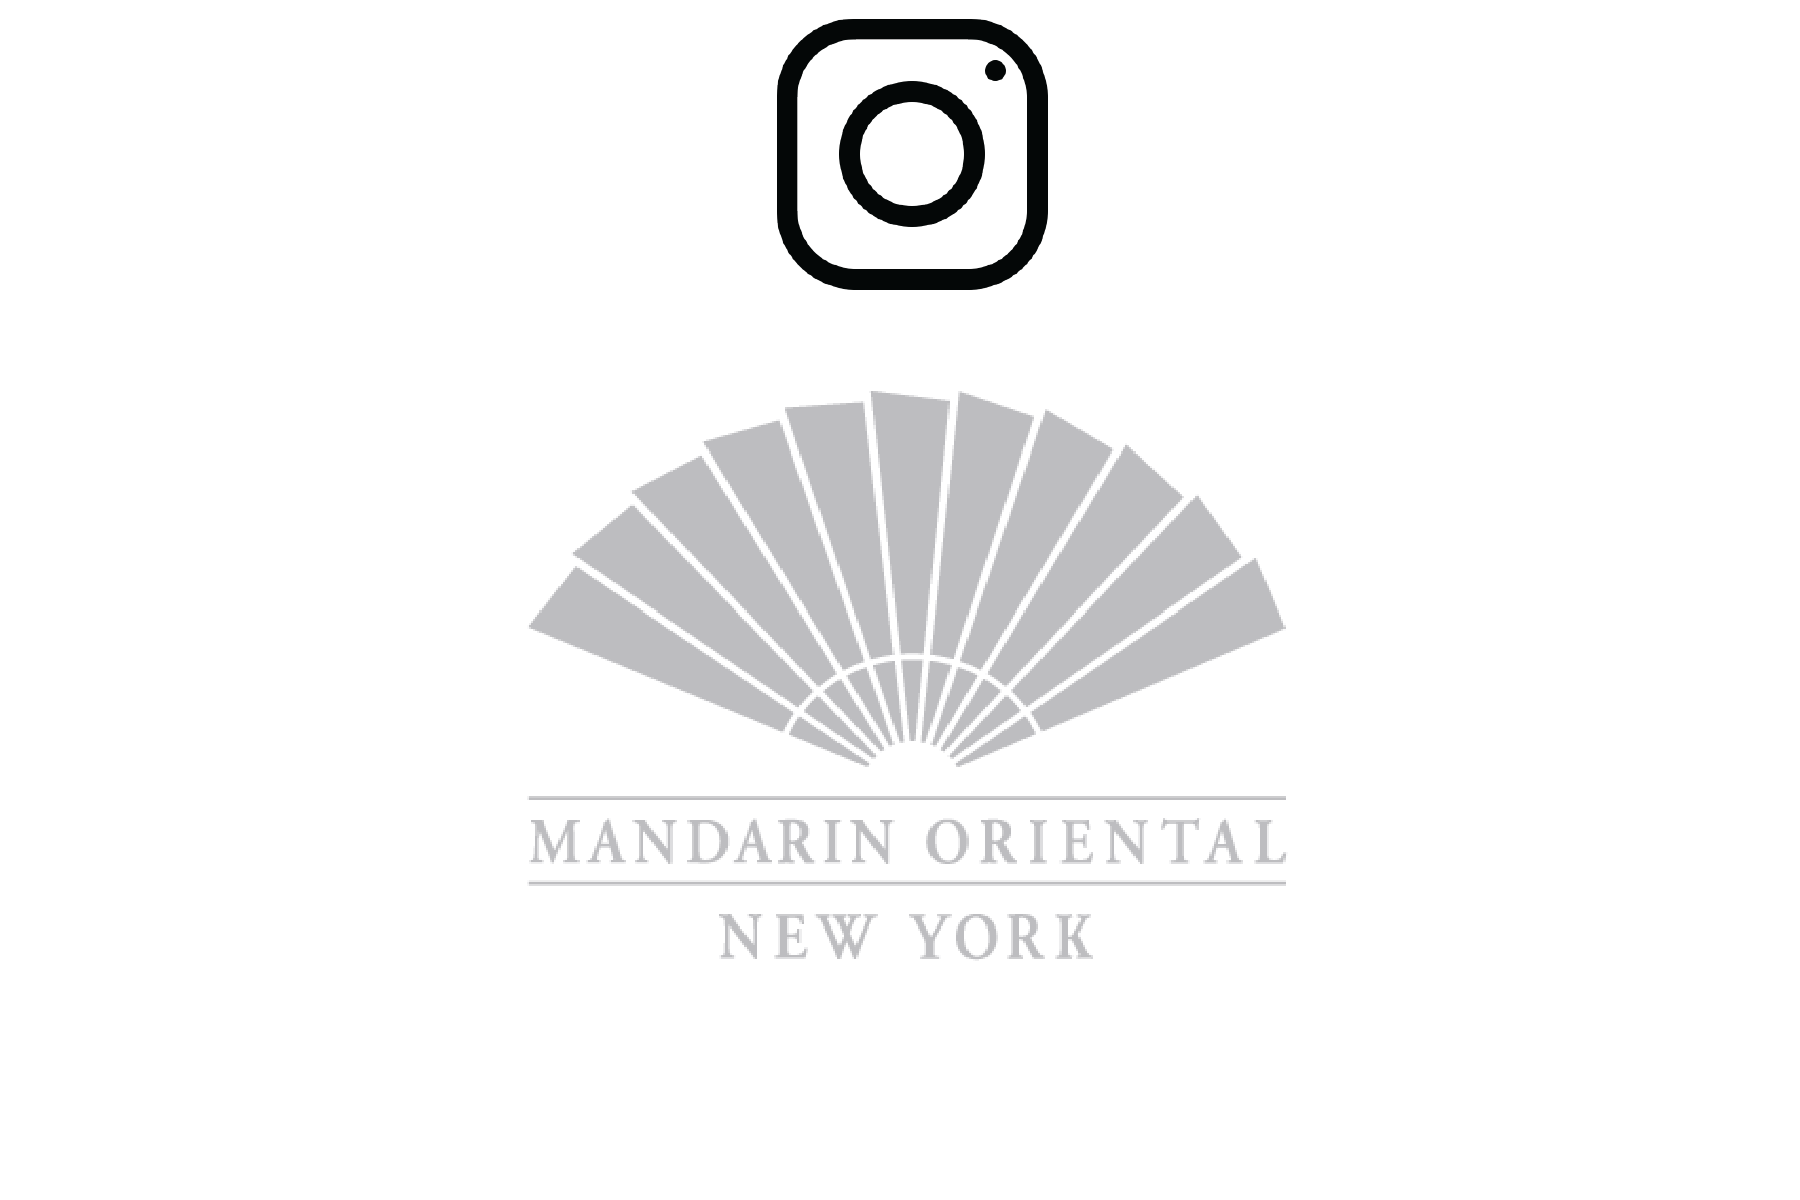 Image of Mandarin Oriental New York City logo with redirect to instagram page when clicked